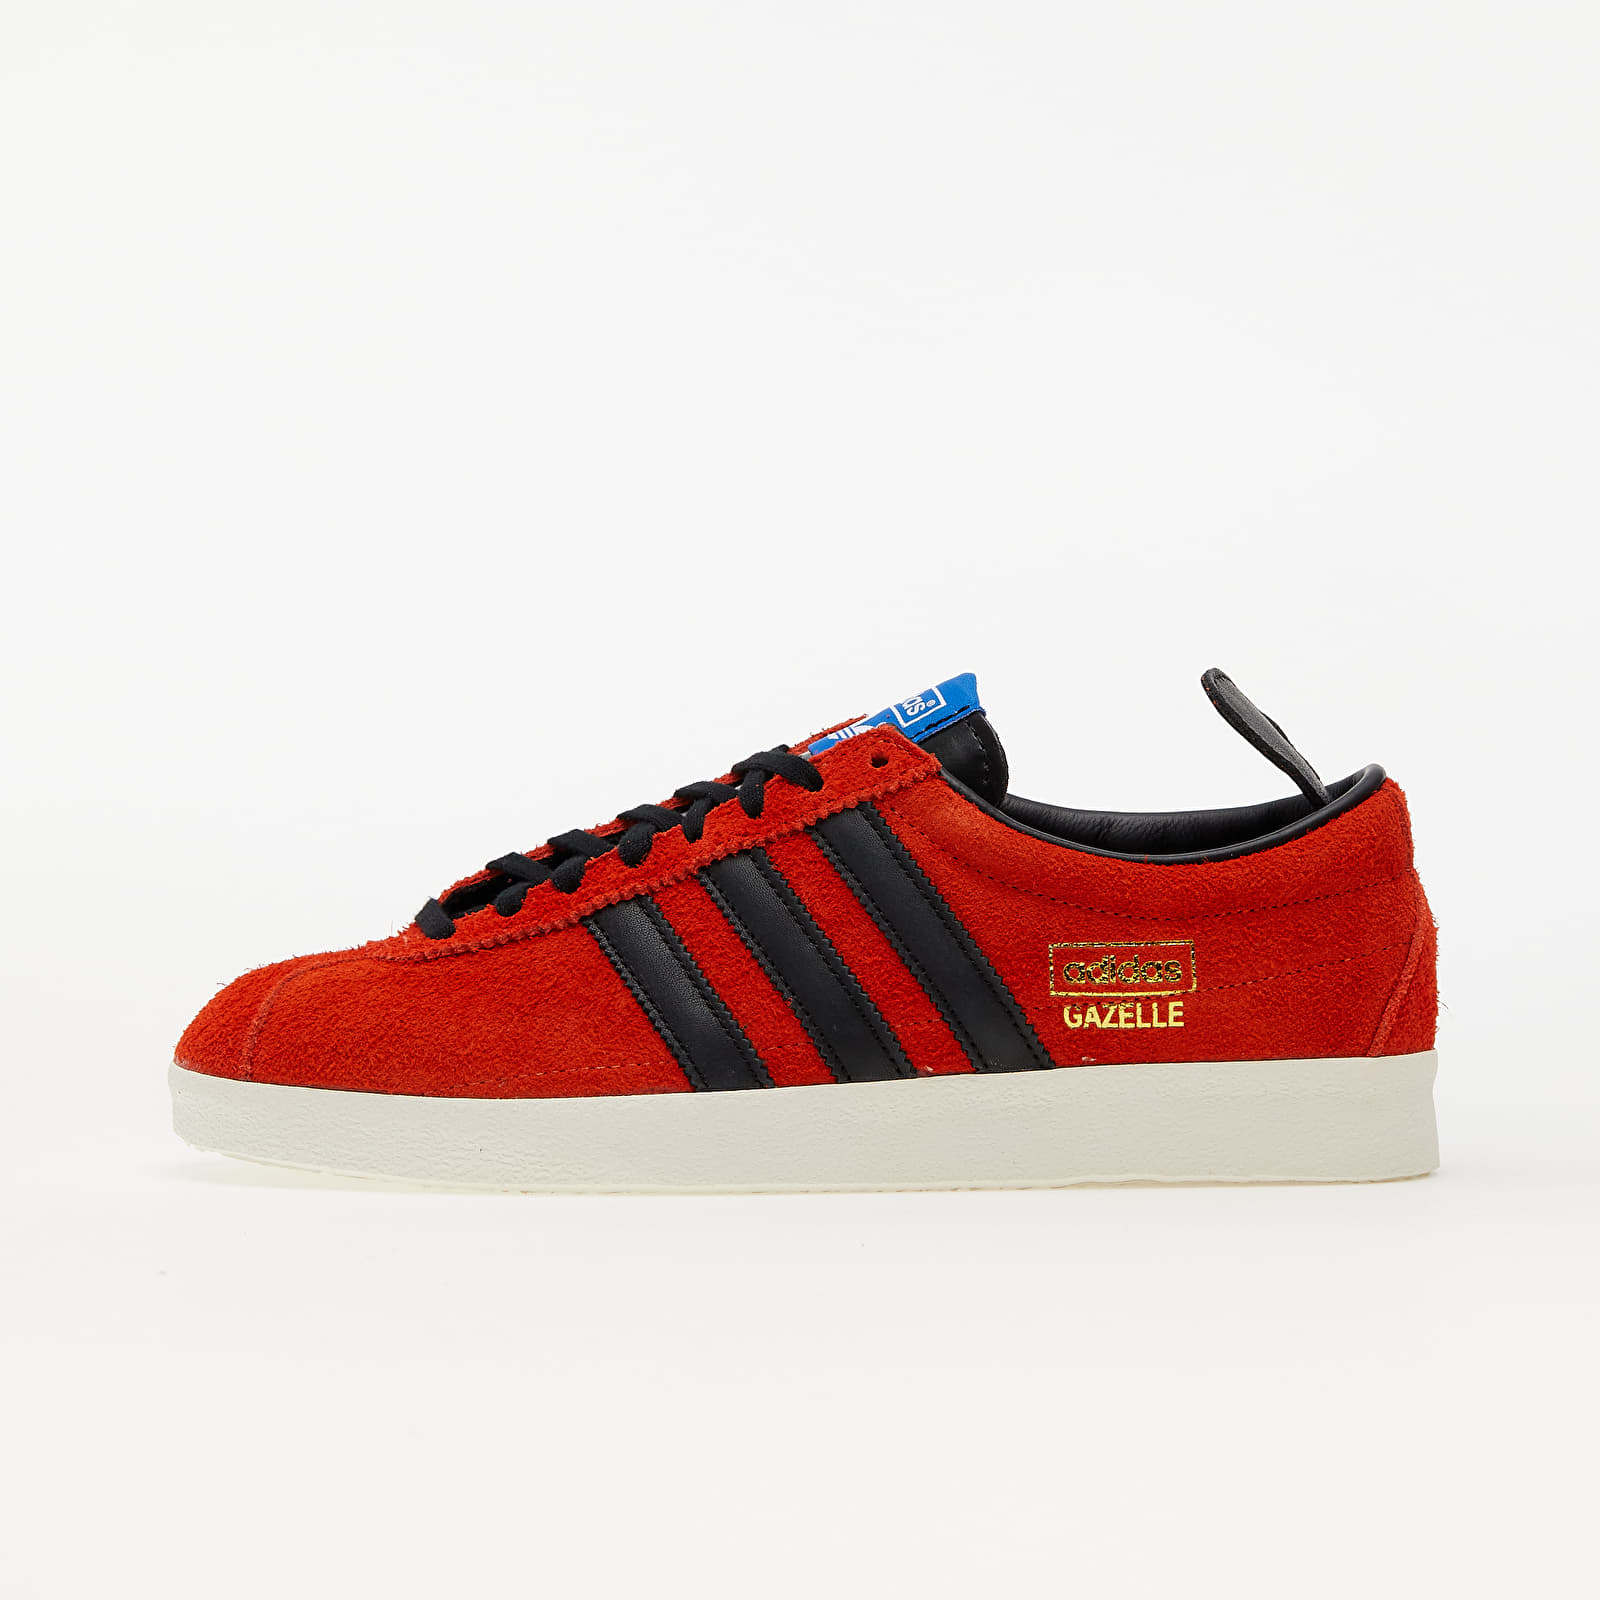 adidas Gazelle Vintage True Orange/ Core Black/ Blue EUR 42